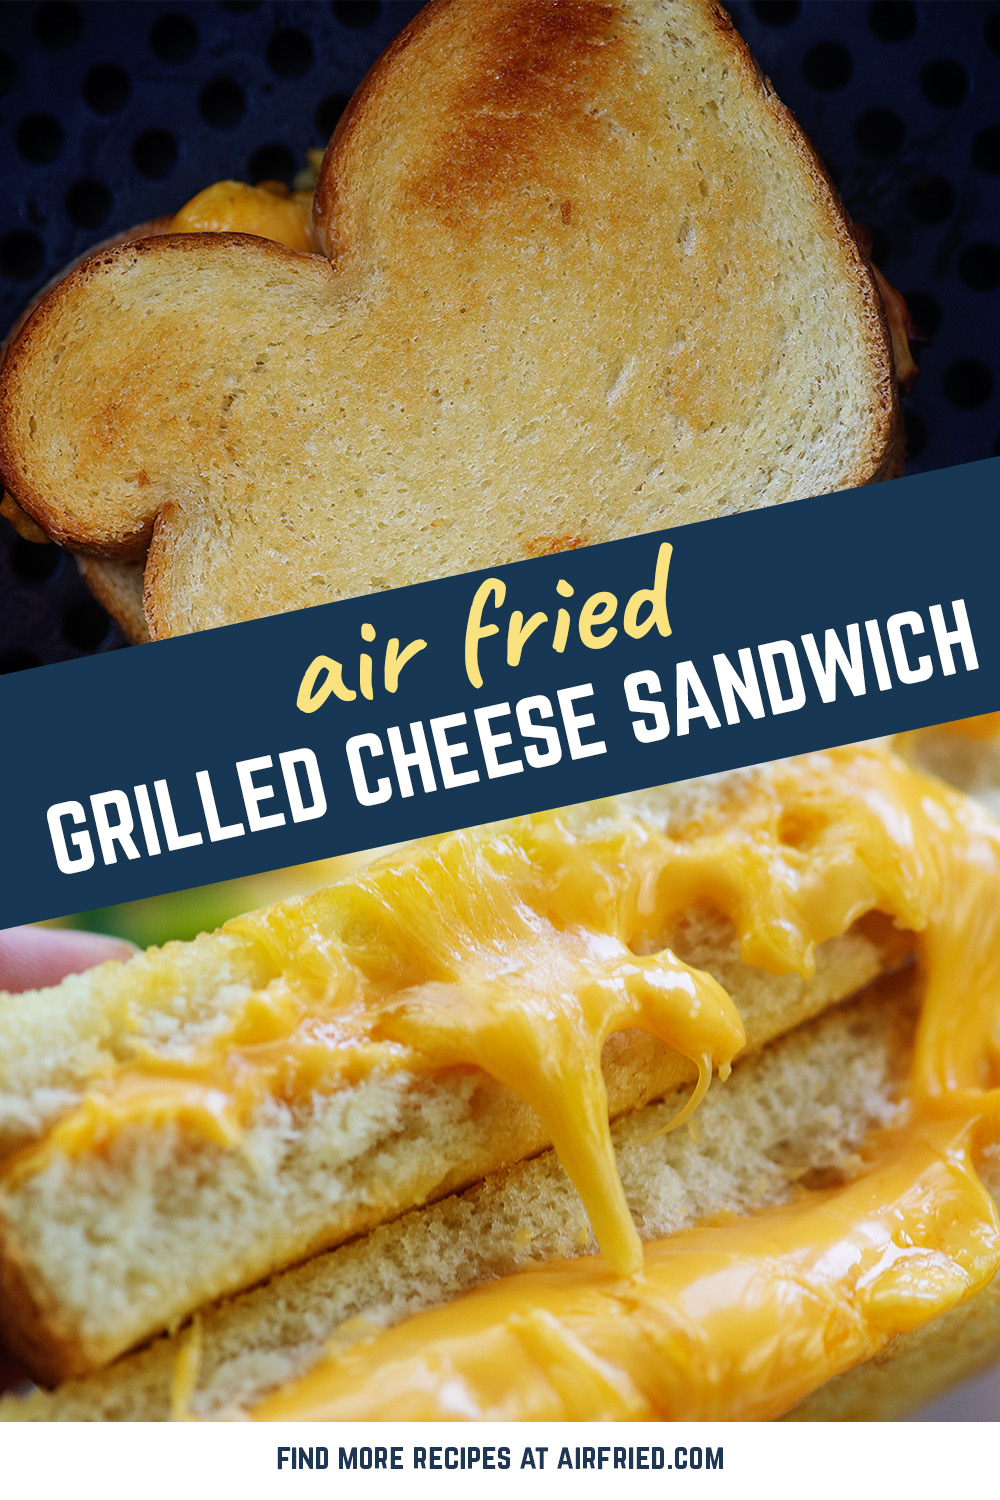 The air fryer makes the perfect grilled cheese sandwich! We like ours extra cheesy! #recipe #airfryer